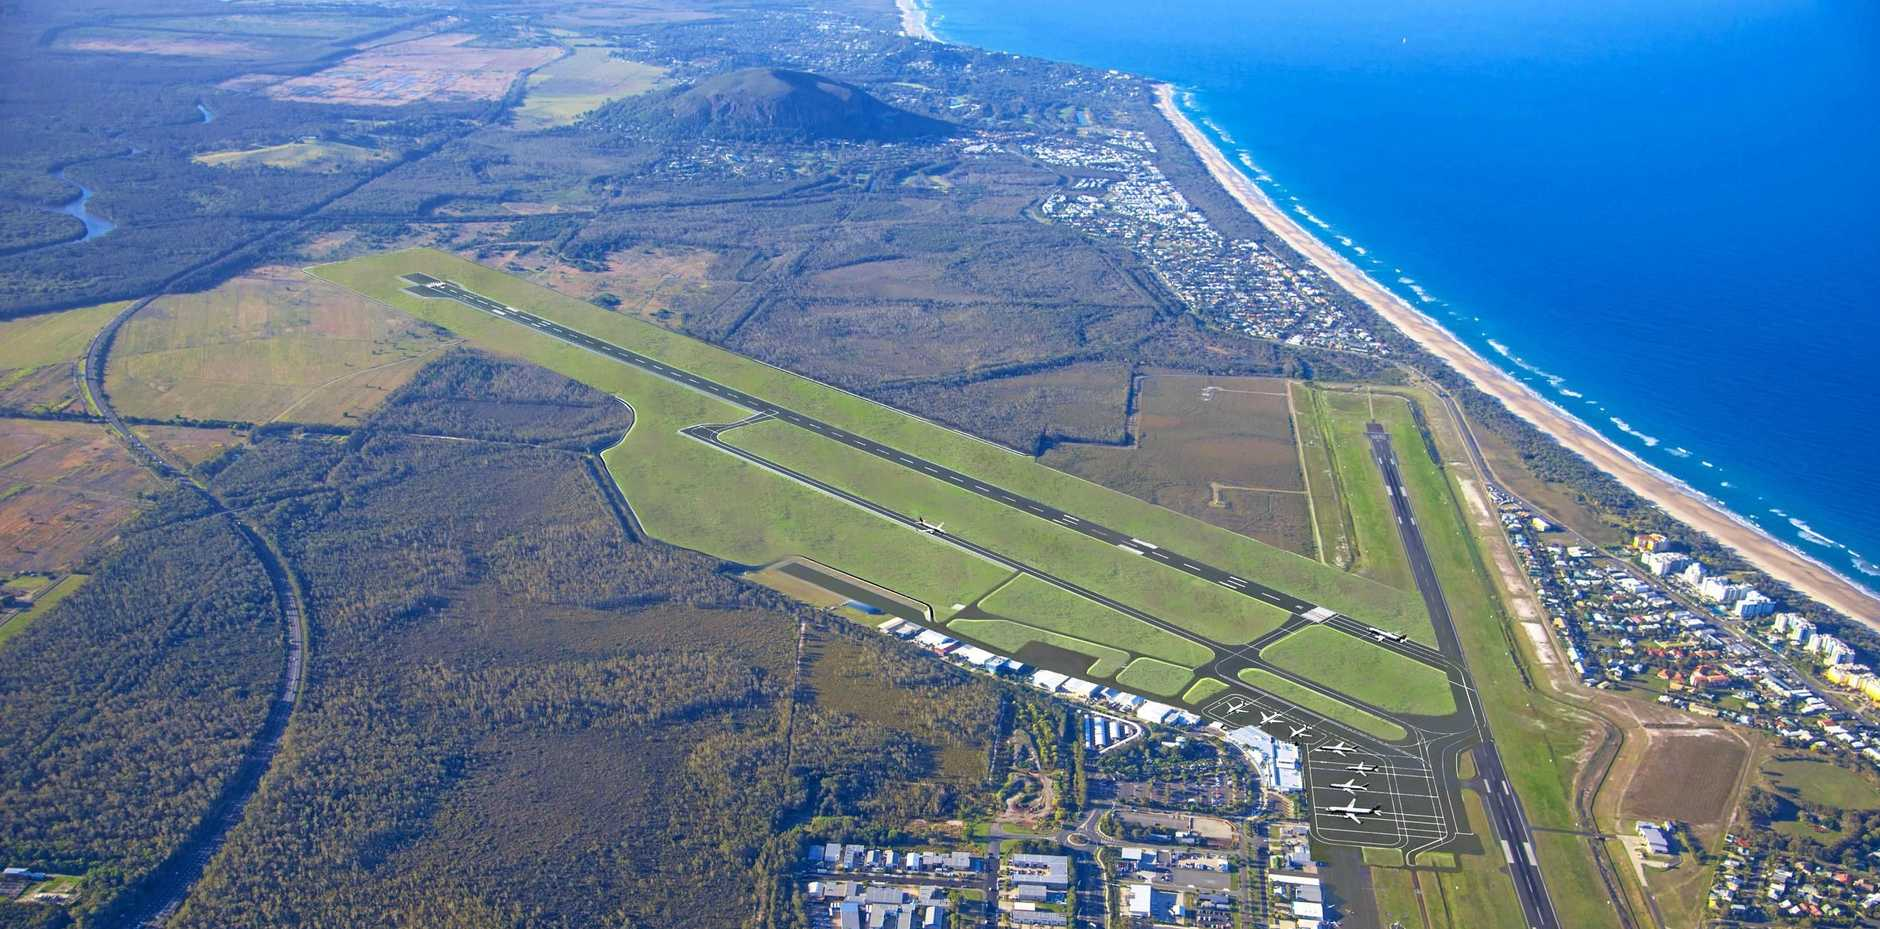 An artist's impression shows what the Sunshine Coast Airport will look like once the expansion work is completed.